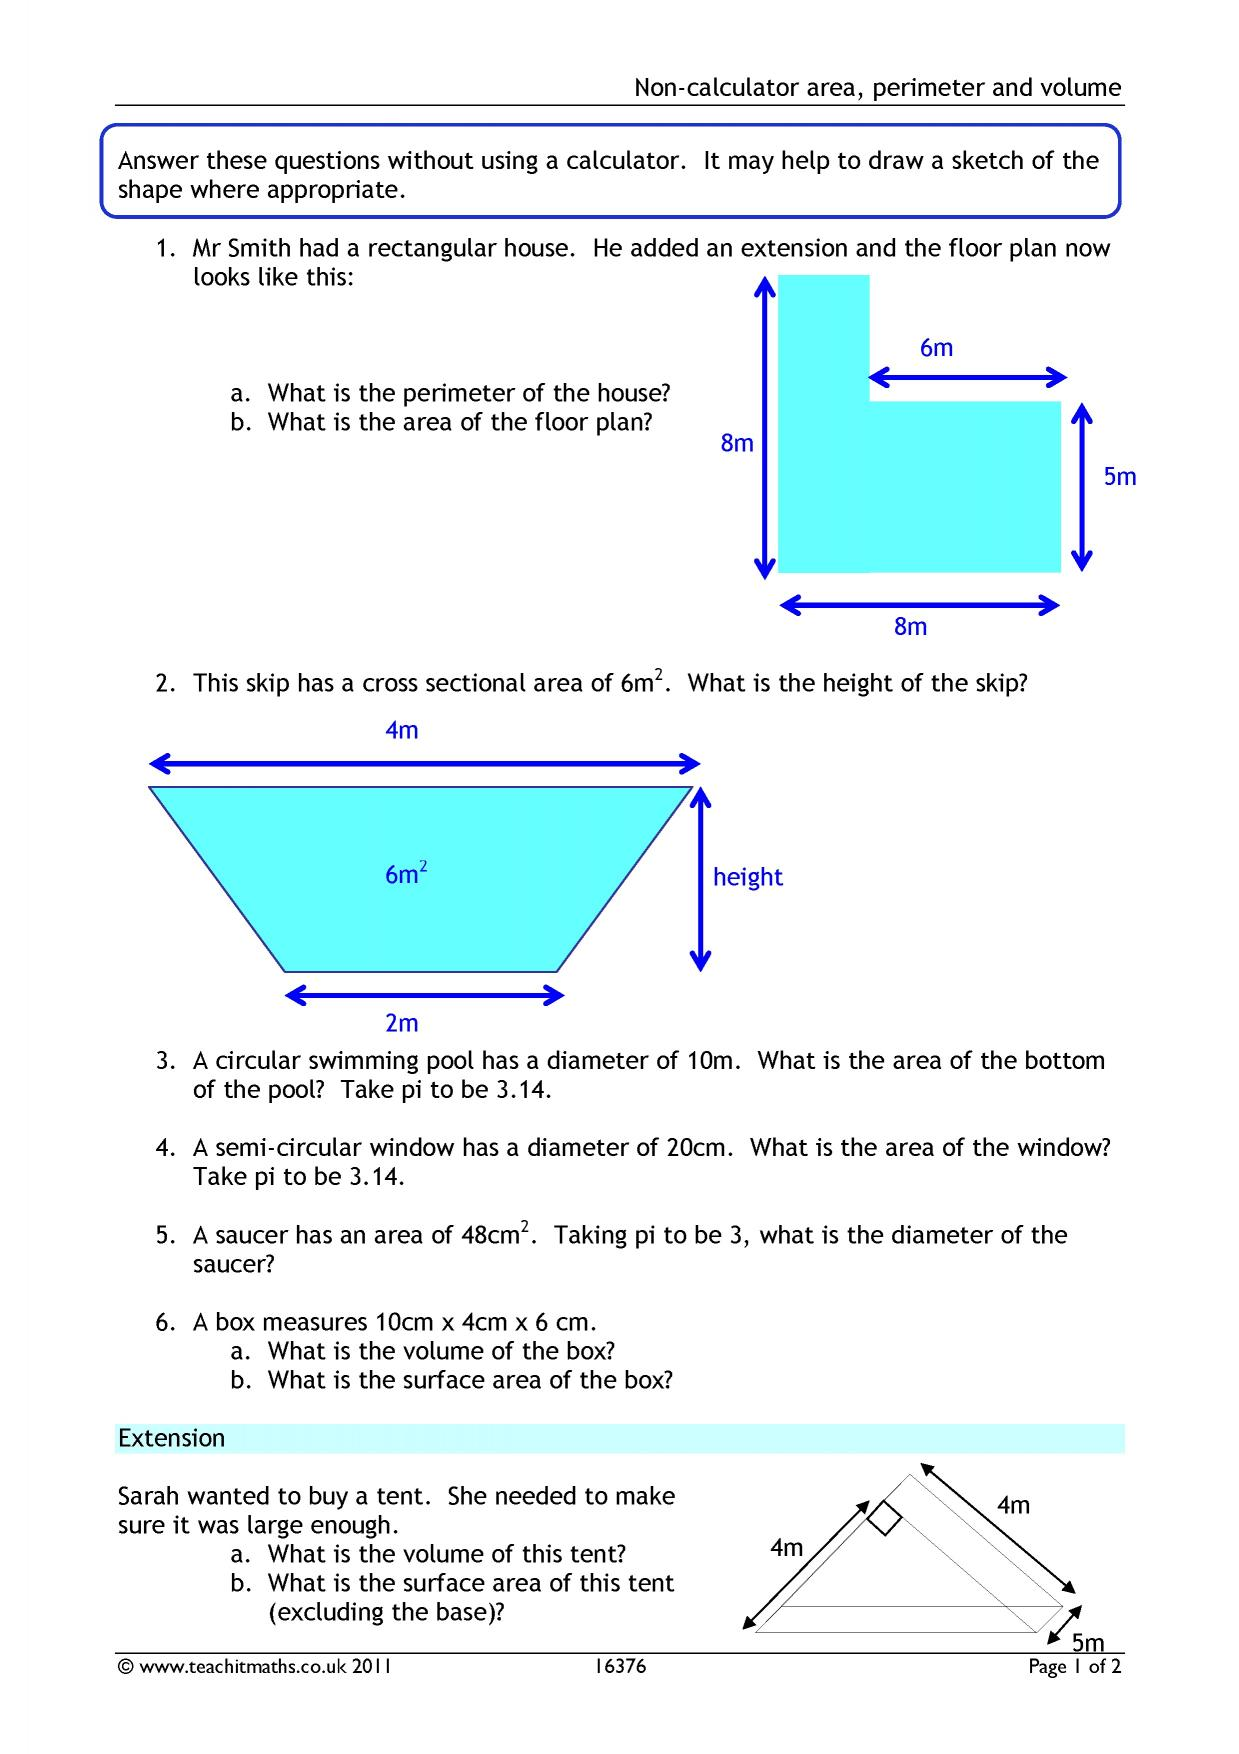 Worksheet Works Cursive Word Volume And Surface Area  Teachit Maths Qualitative Vs Quantitative Worksheet Pdf with Mass Mass Problems Worksheet Answers  Preview Gravity Worksheet